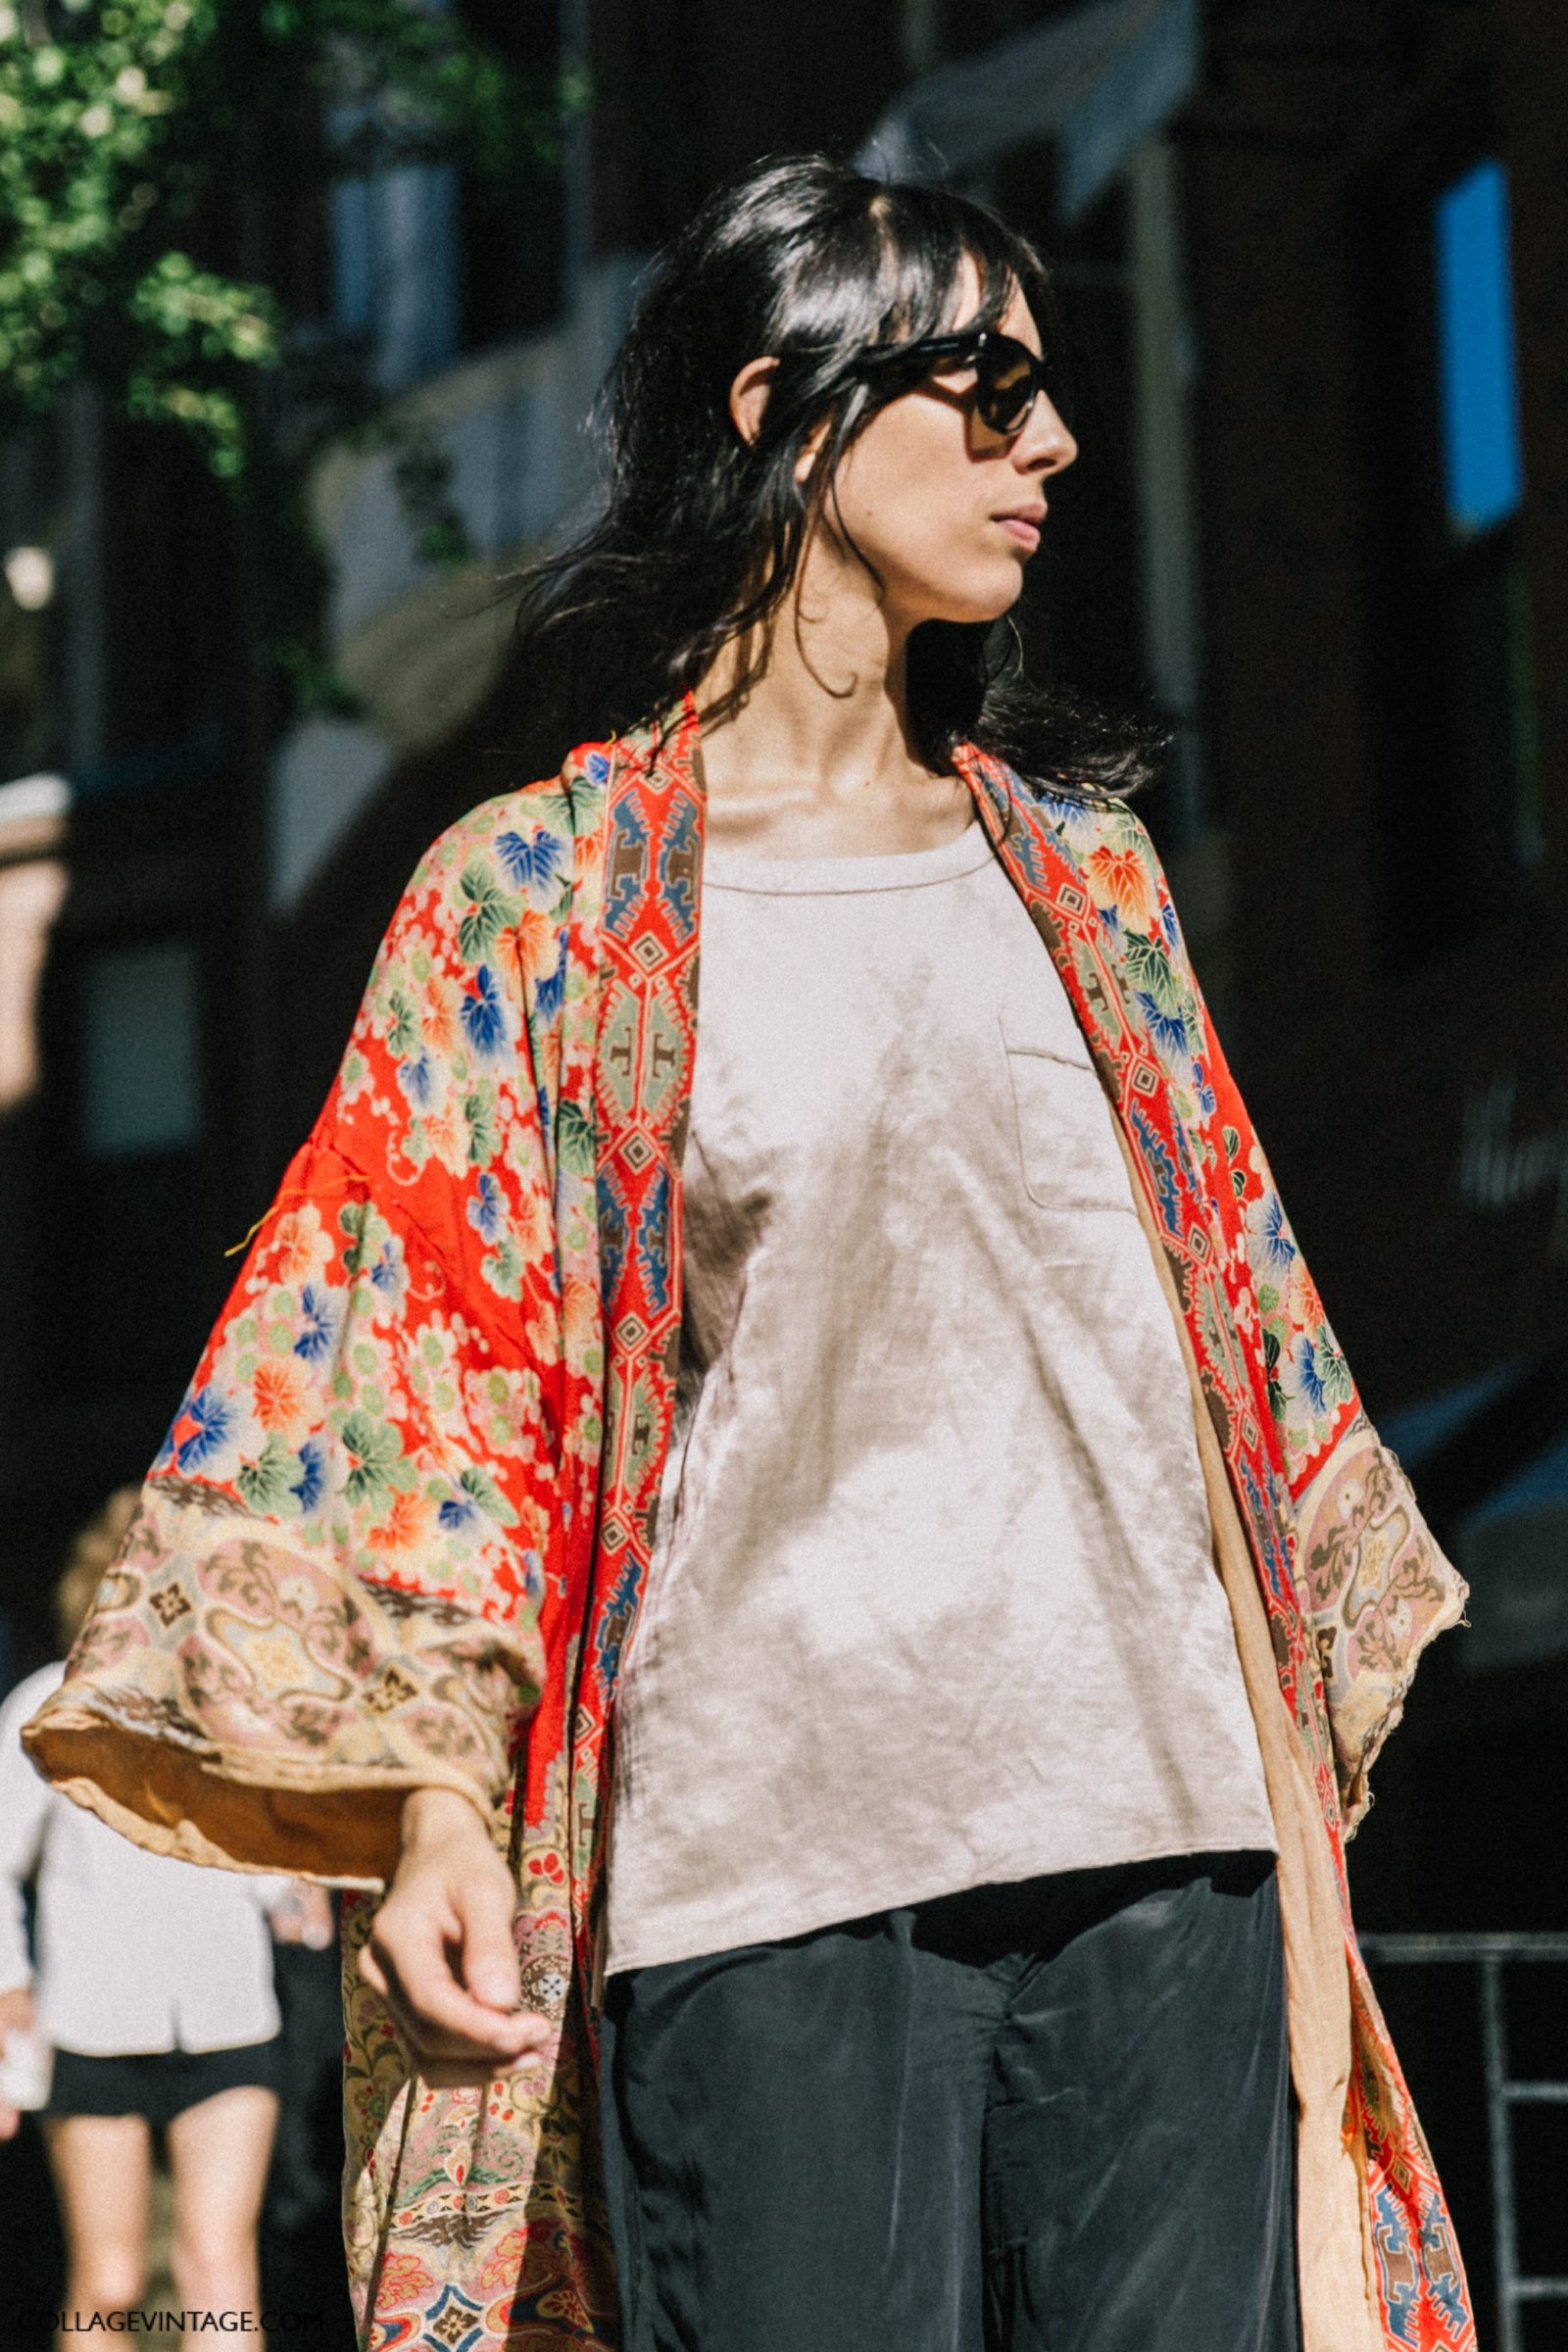 nyfw-new_york_fashion_week_ss17-street_style-outfits-collage_vintage-vintage-phillip_lim-the-row-proenza_schouler-rossie_aussolin-45